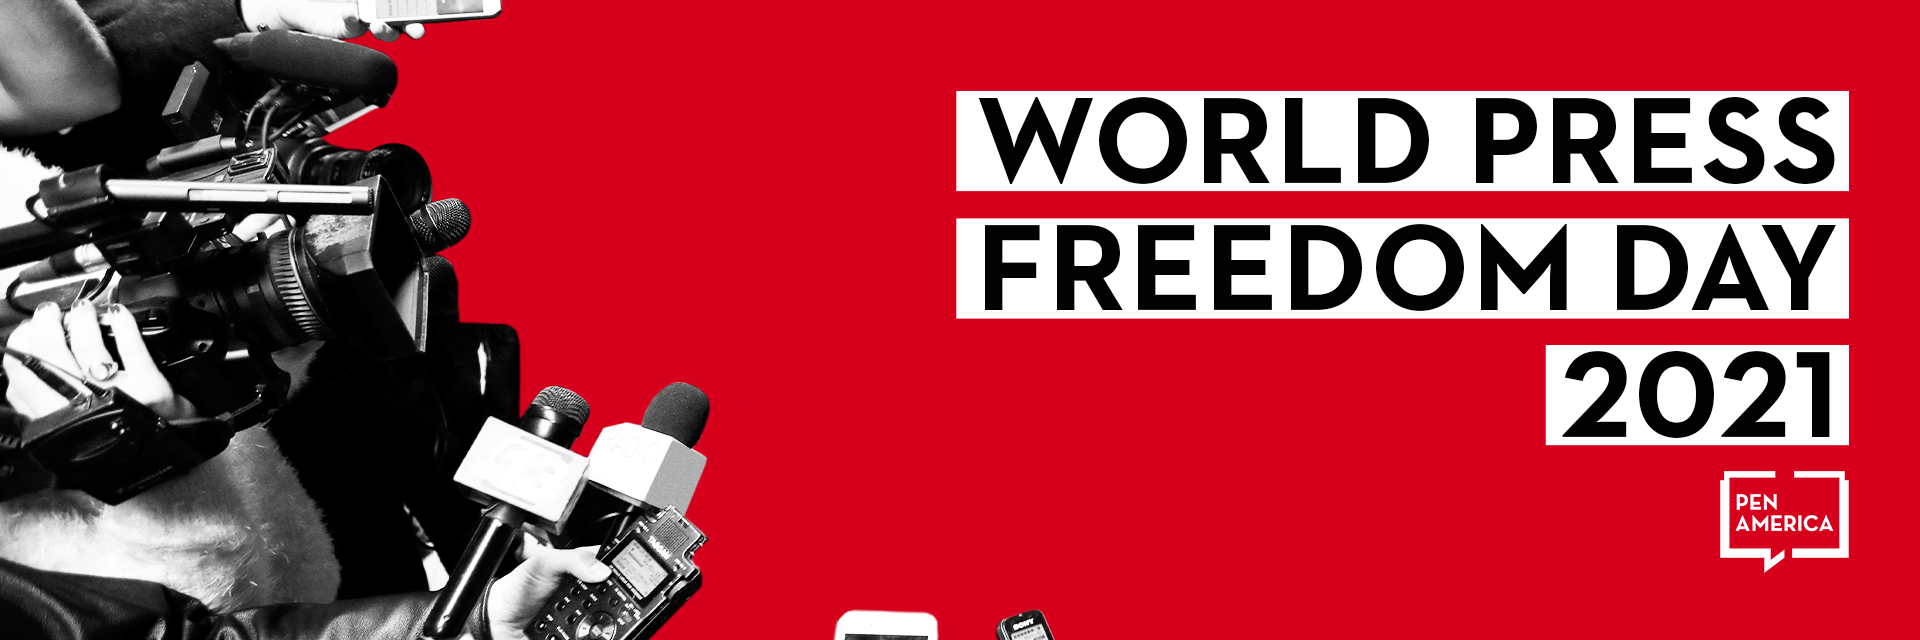 "Reporters, microphones, and cameras on left; on right: ""World Press Freedom Day 2021"" and PEN America logo"